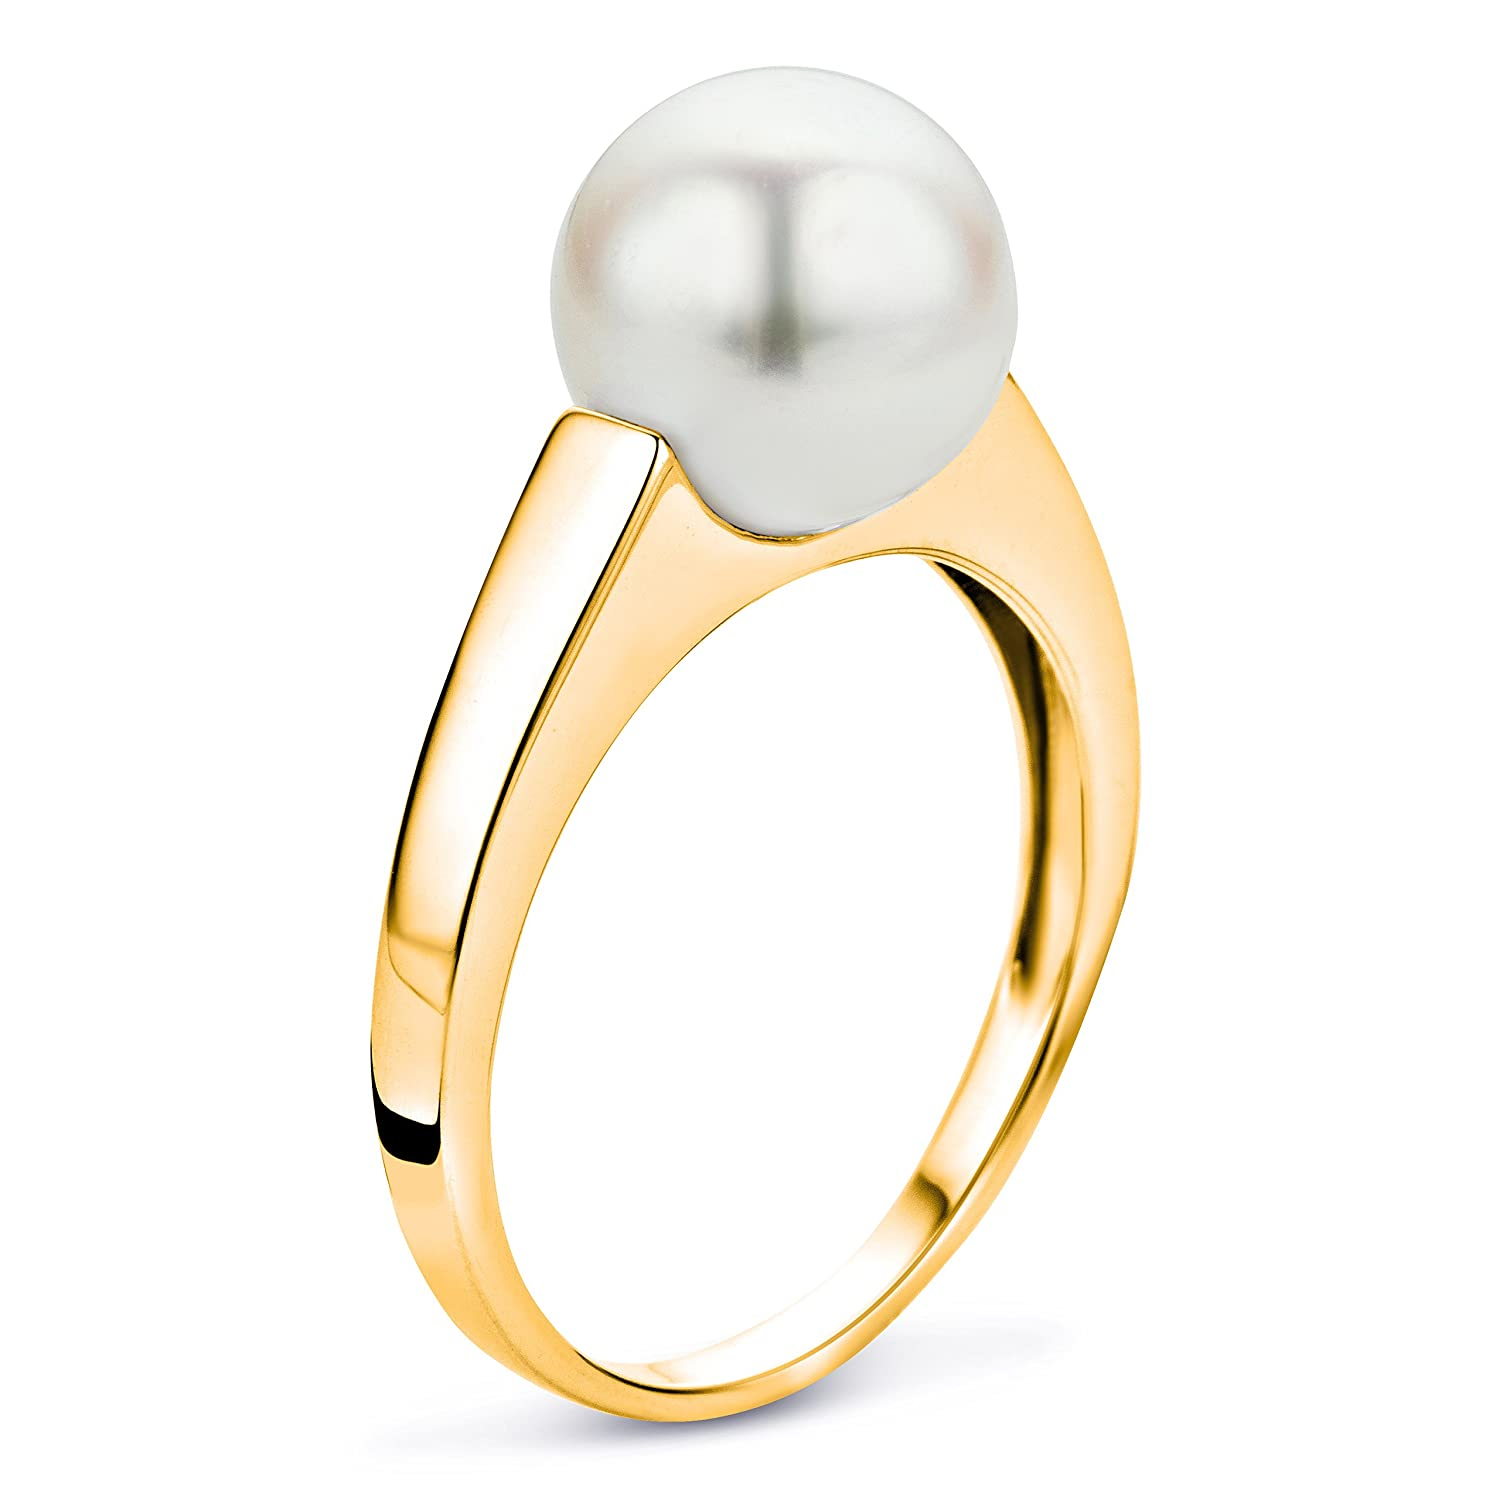 Miore Ladies 9ct White Gold Freshwater Pearl Ring 8.5mm USP041RW- Size L m3zVV4u